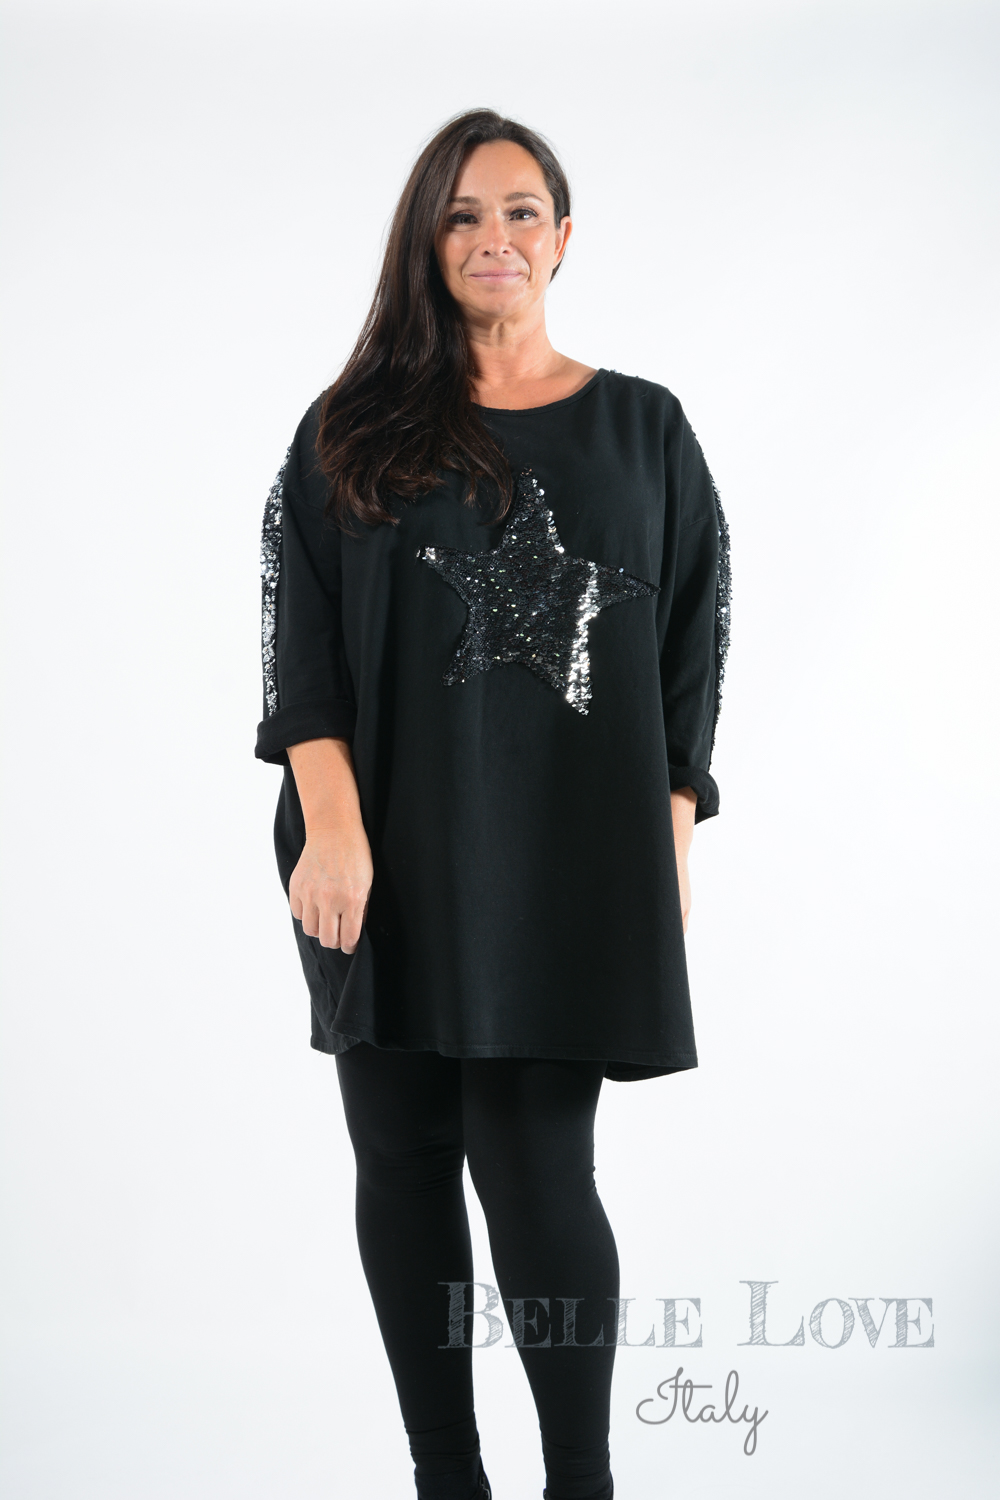 Belle Love Italy Saturn Sequin Star Top